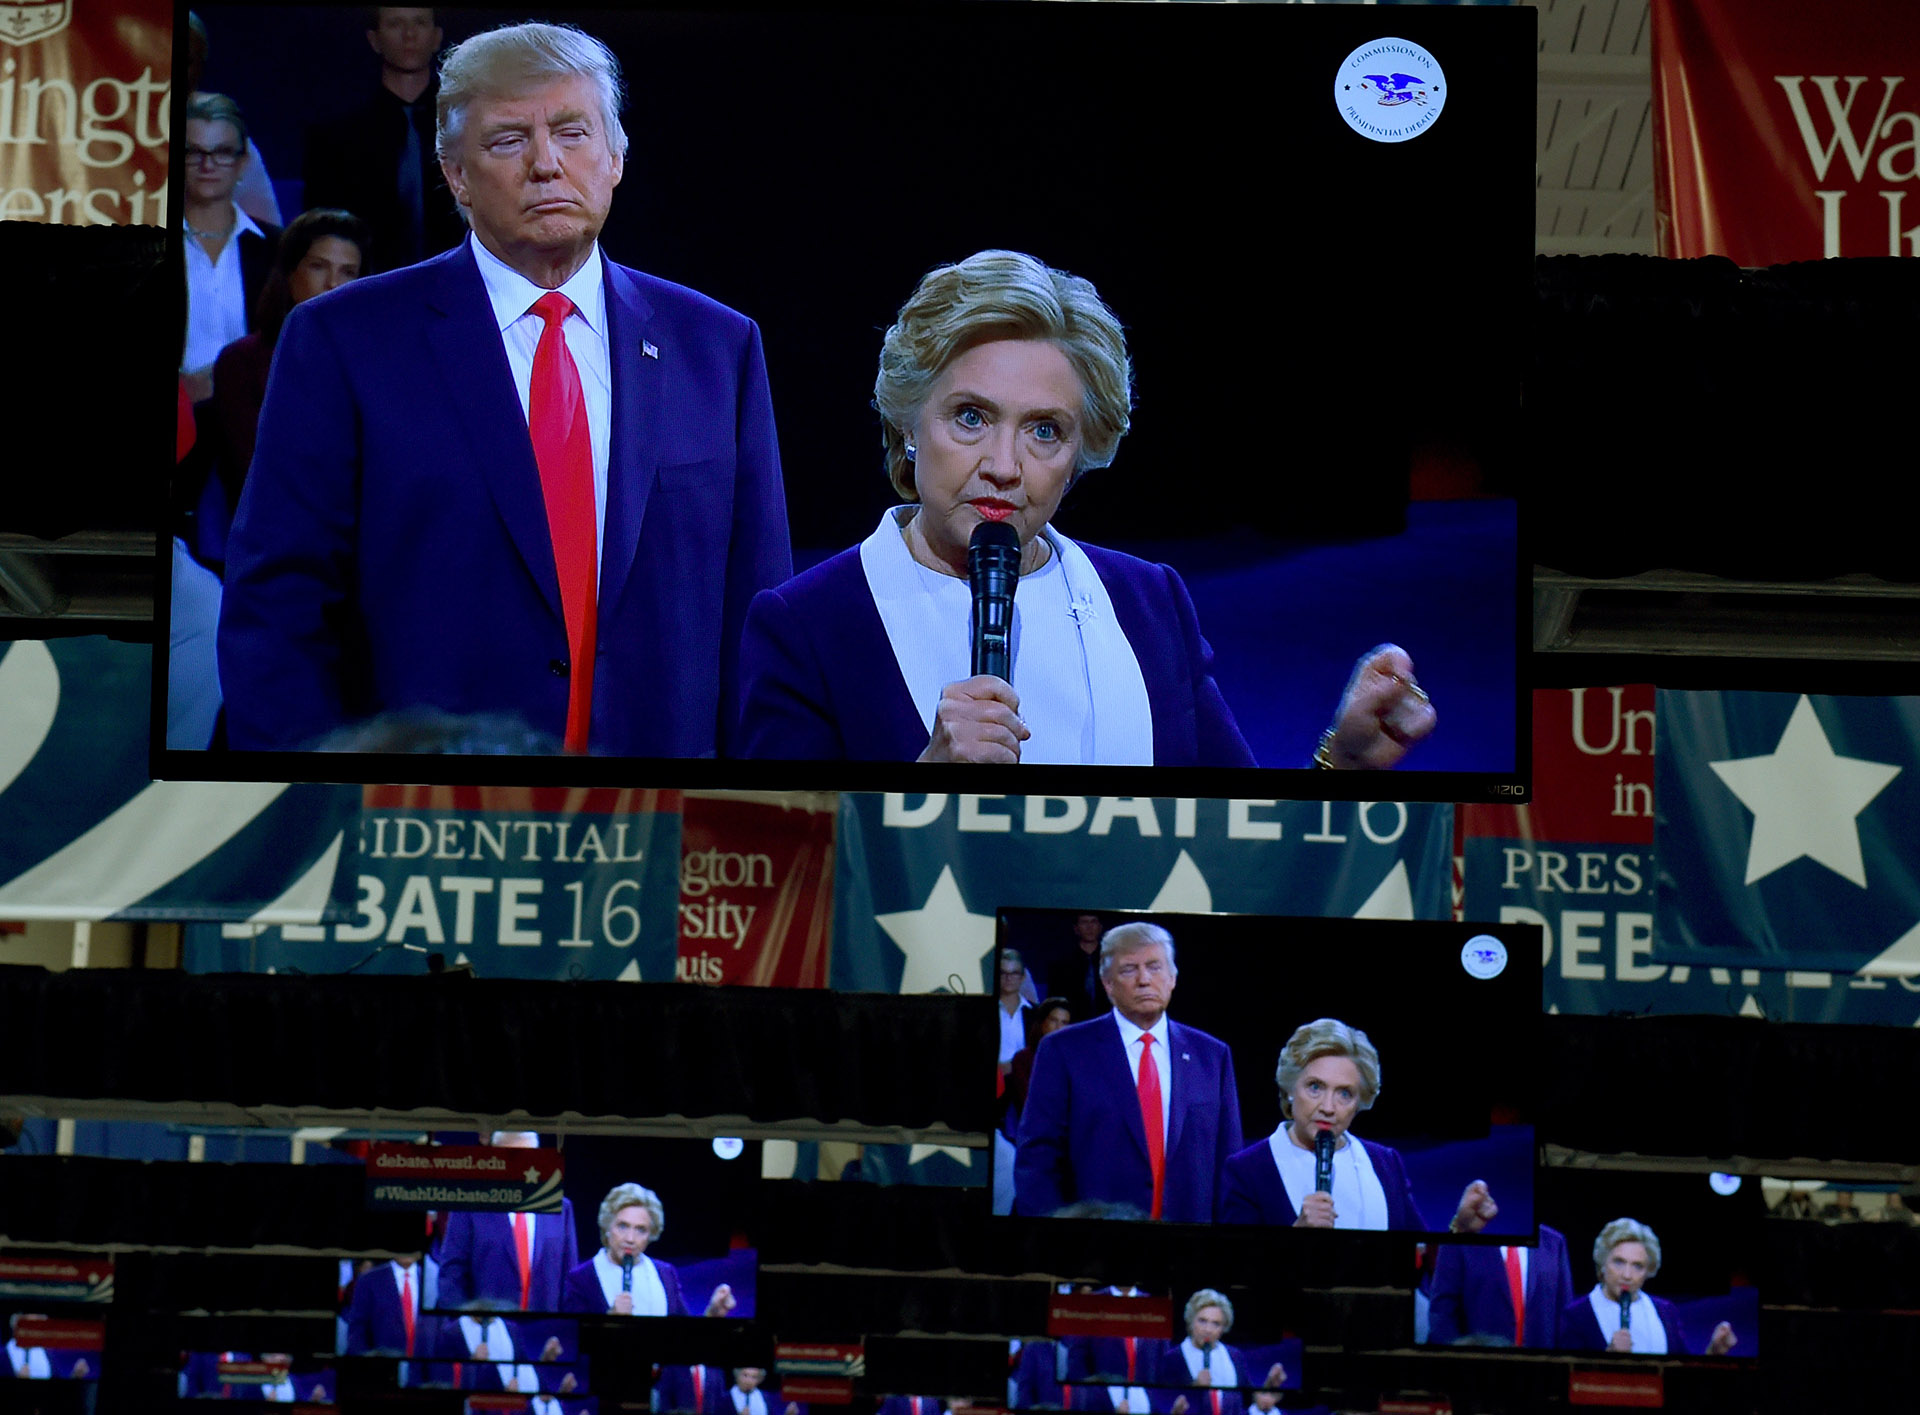 TV monitors in the press room show Republican nominee Donald Trump and Democrat nominee Hillary Clinton on stage as they participate in the 2nd debate at Washington University in St. Louis, Missouri October 9, 2016. / AFP / TIMOTHY A. CLARY (Photo credit should read TIMOTHY A. CLARY/AFP/Getty Images)